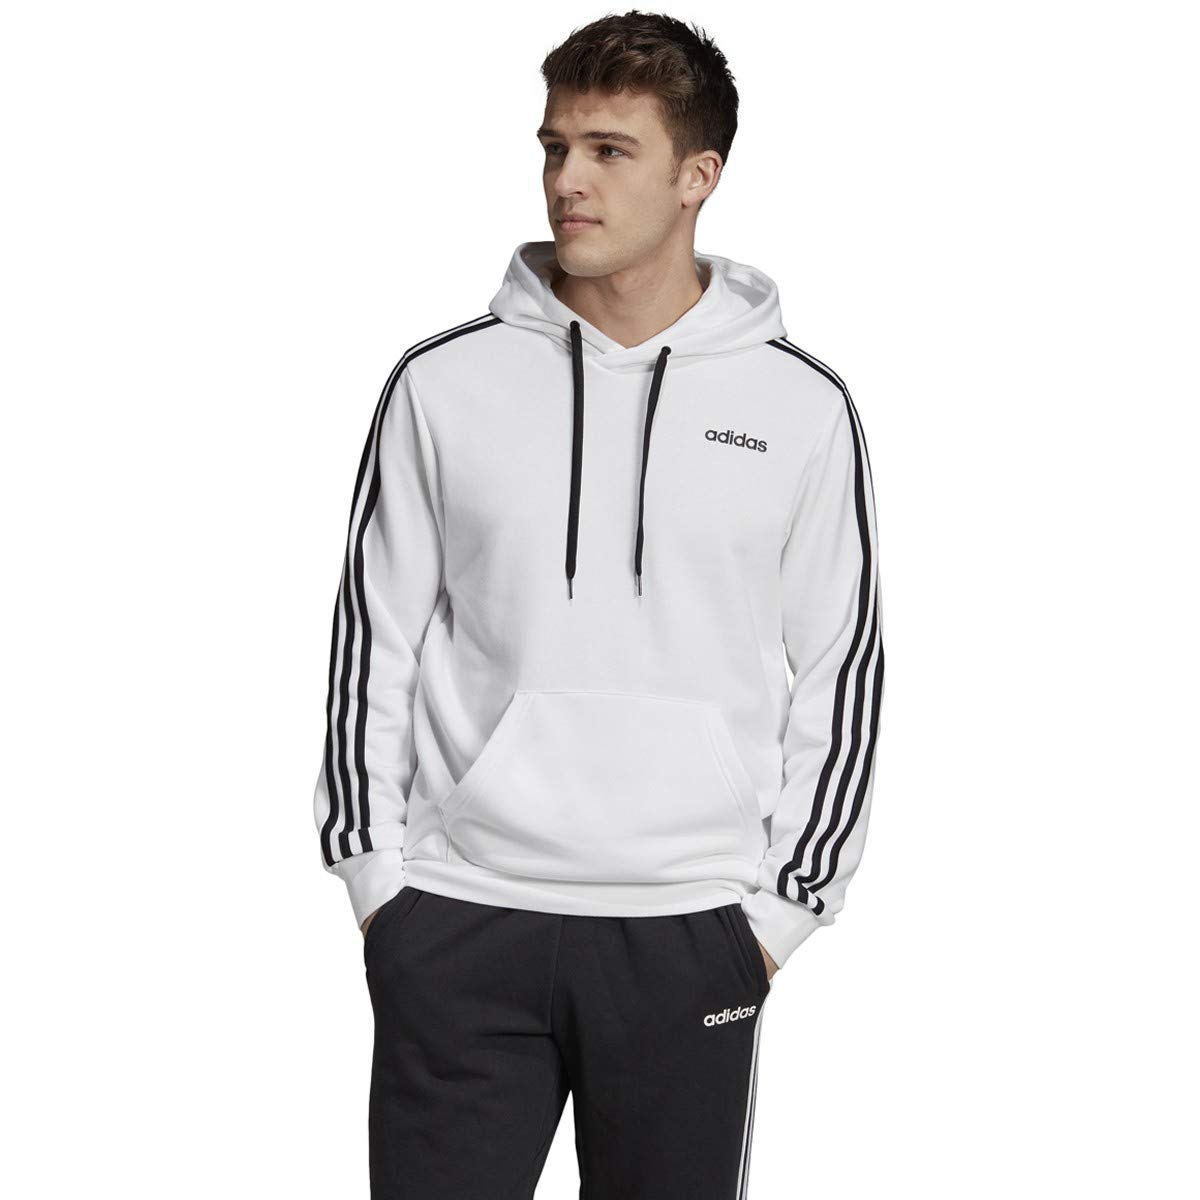 adidas Essentials 3 Stripes Pullover French Terry, White/Black, 3XLT by adidas